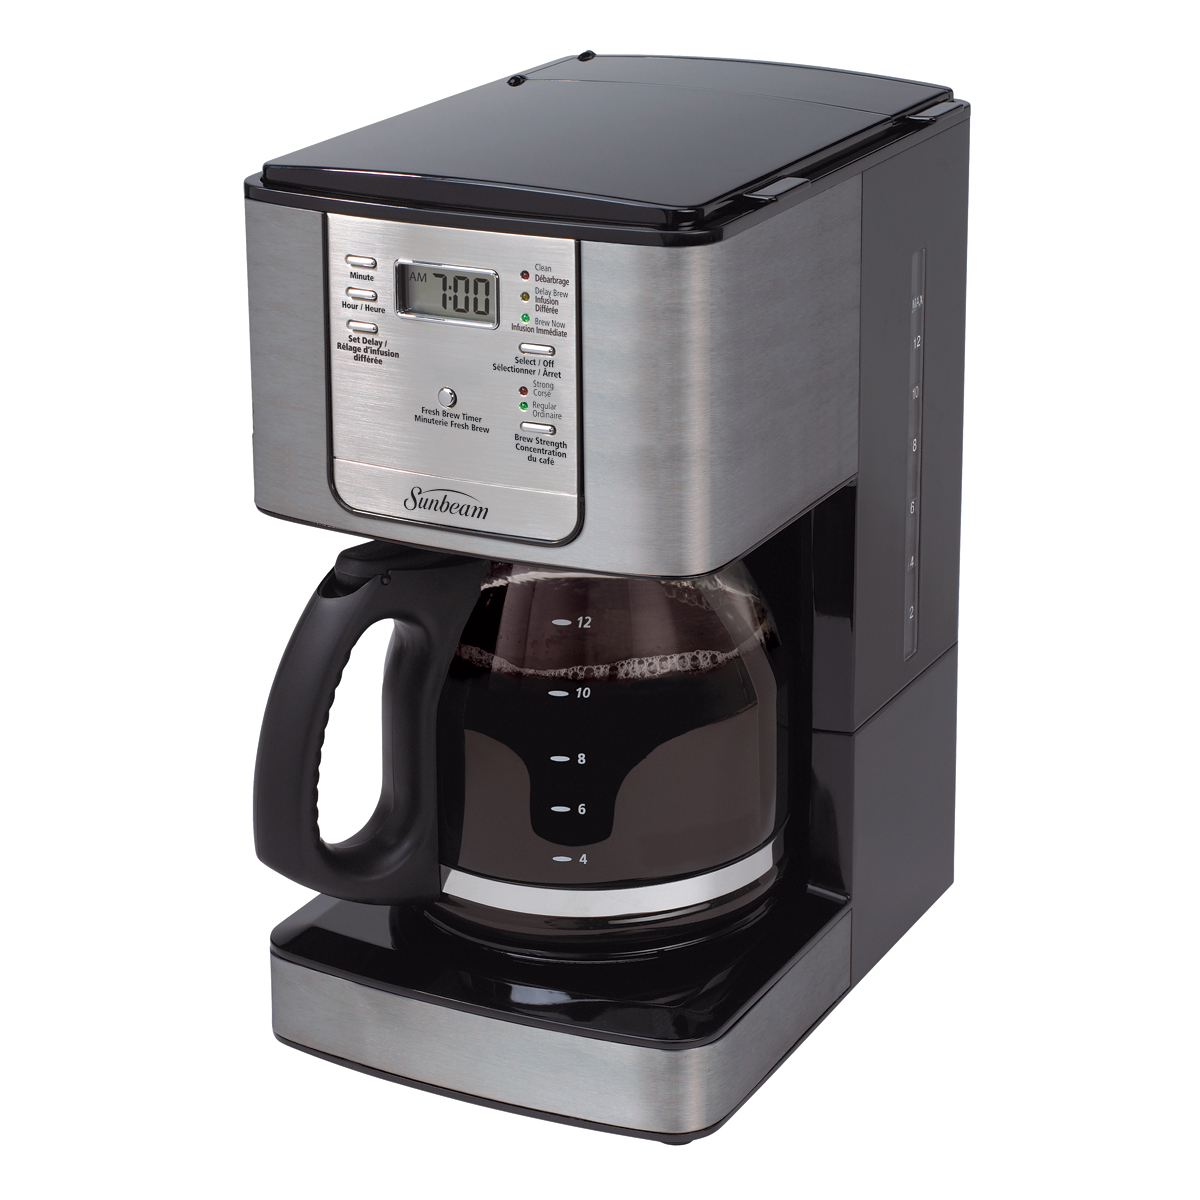 Sunbeam 174 12 Cup Programmable Coffeemaker Smoke Pearl